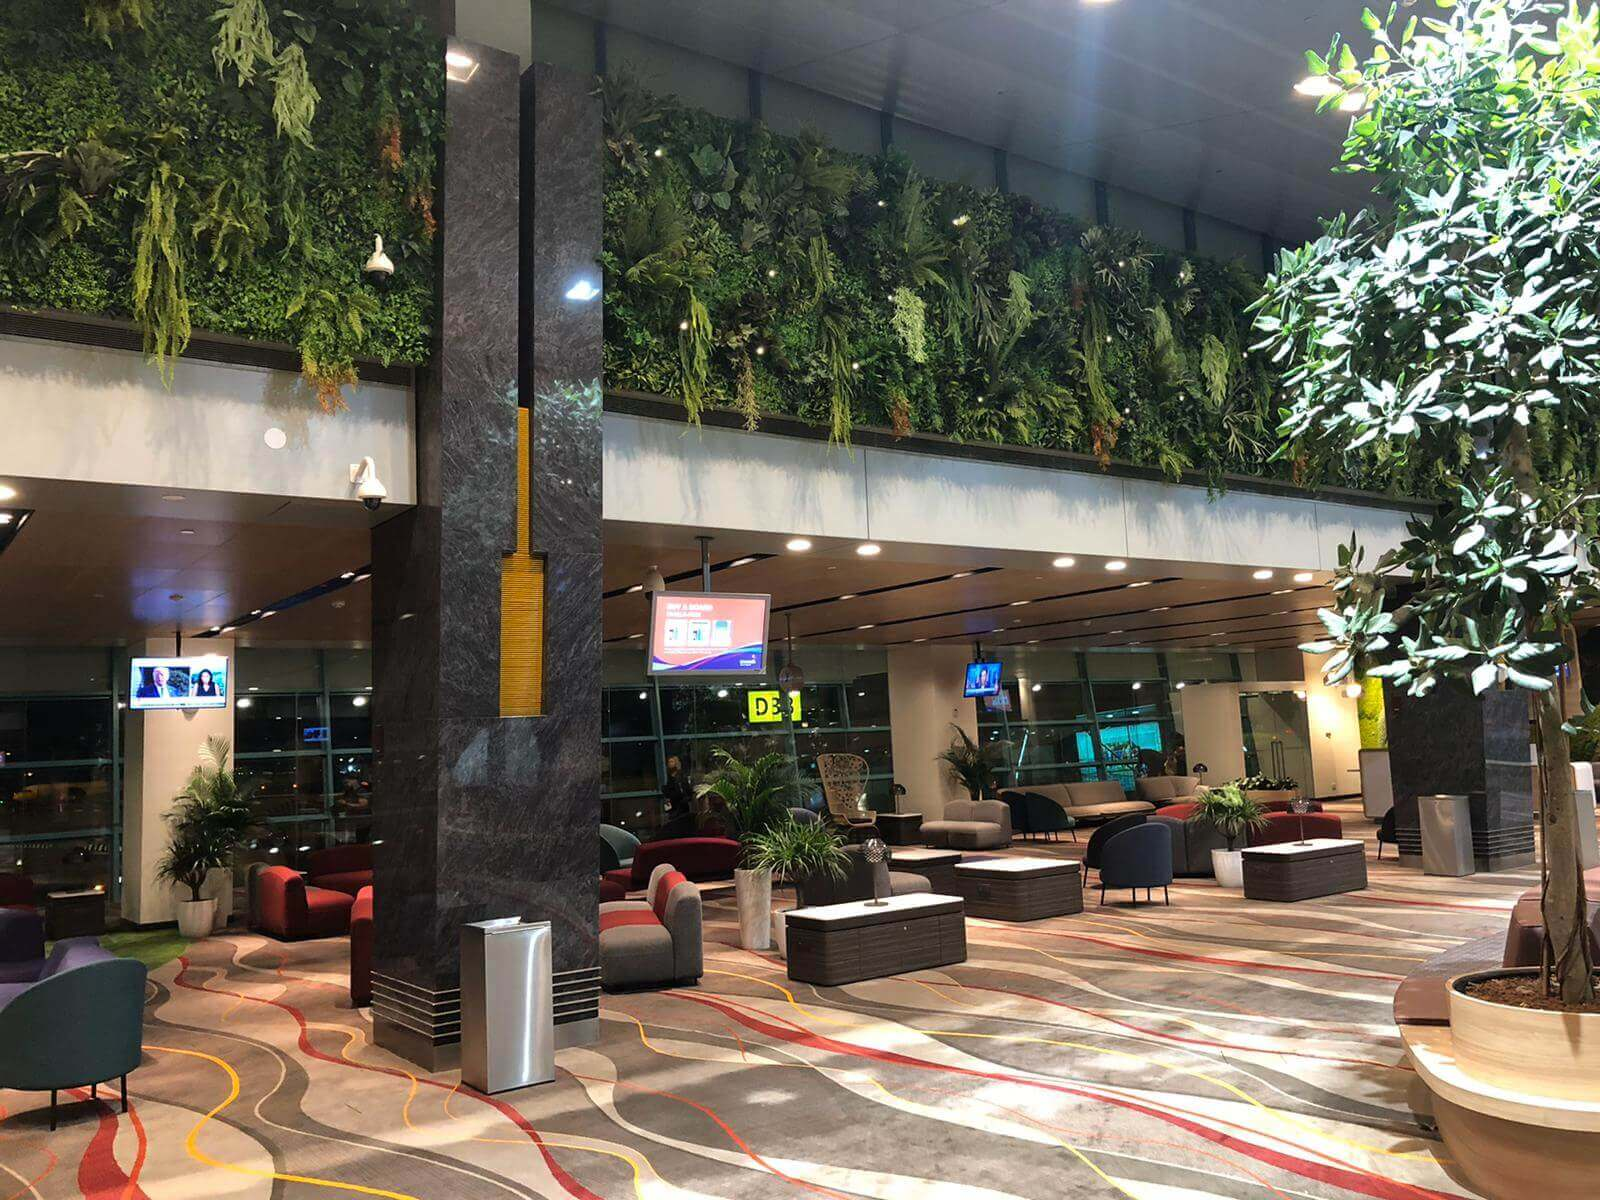 Changi airport project Terminal 1 departure hall 4